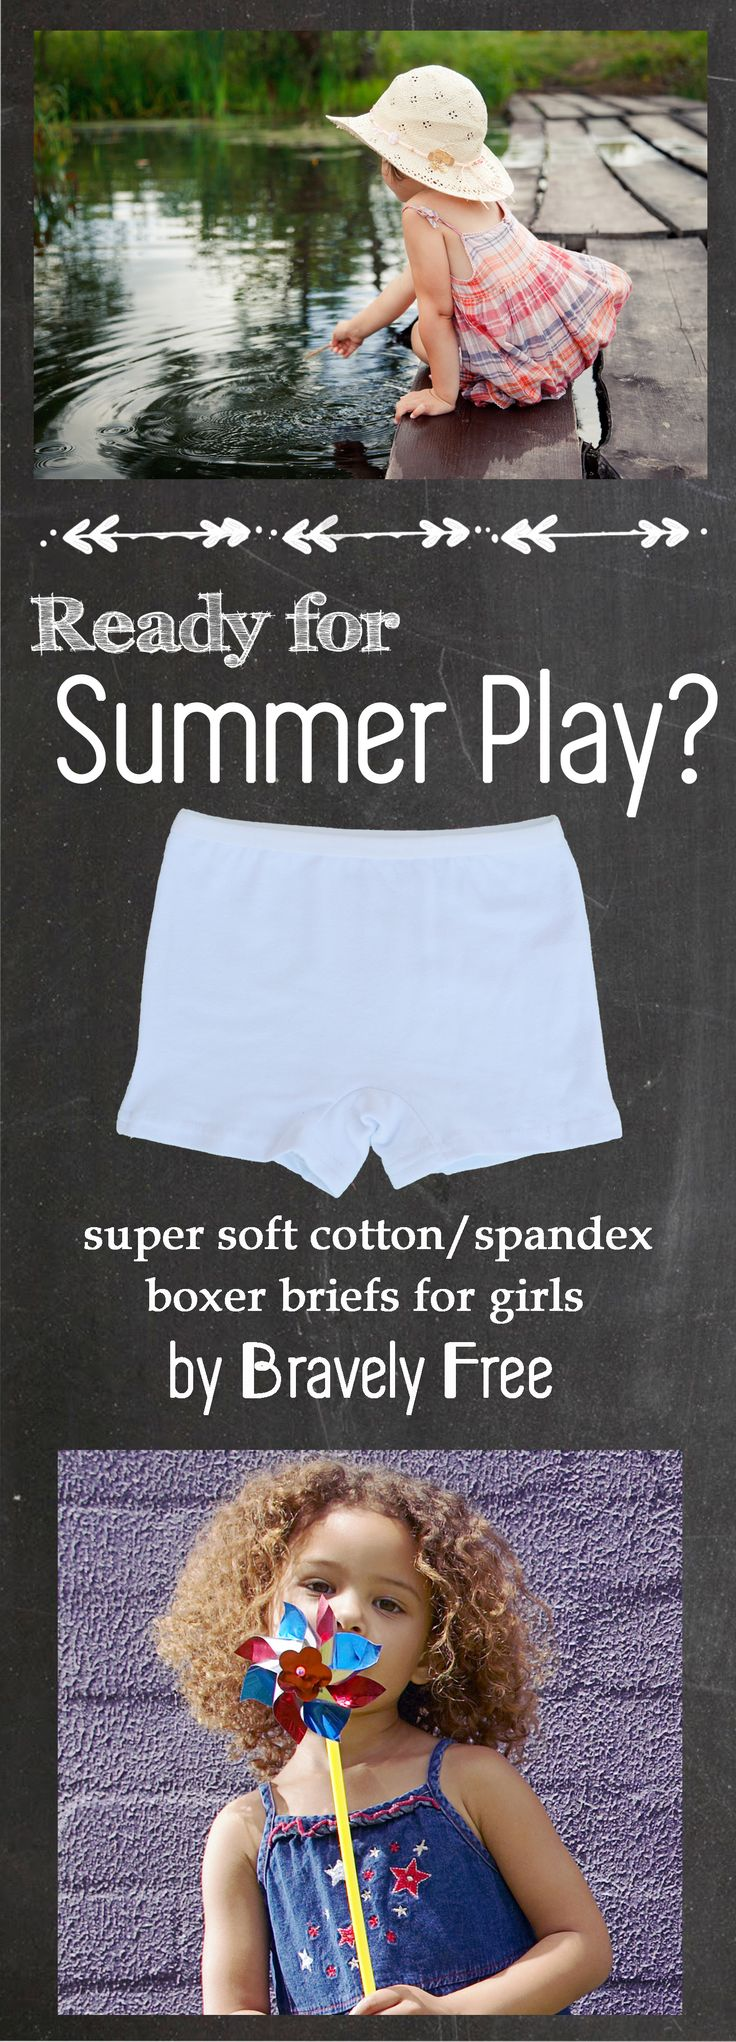 tied busty 2girl  Pin this! Little girls boxer briefs. Cotton spandex blend, super soft and  comfy